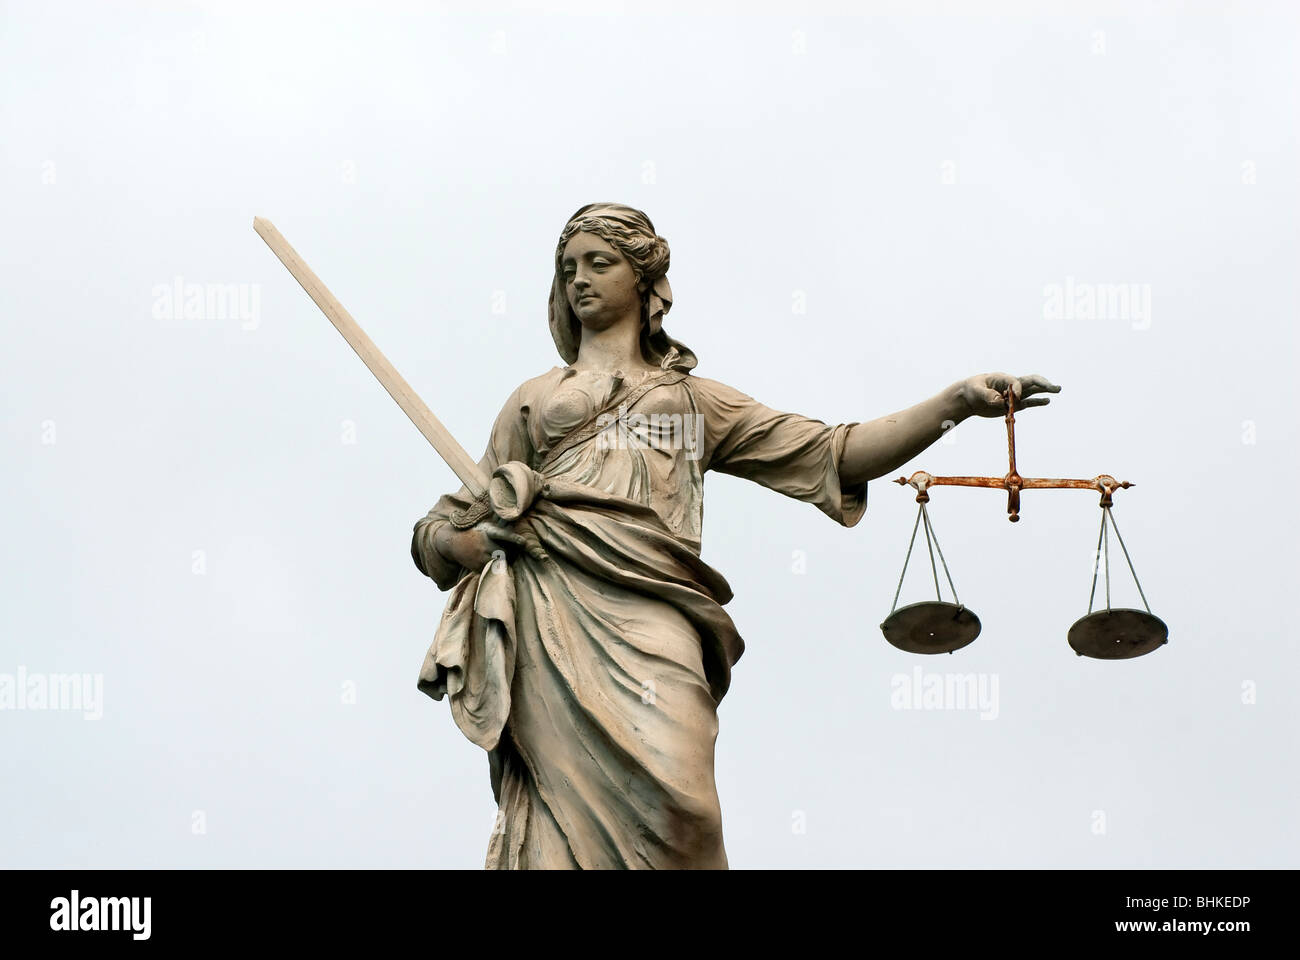 Scales of Justice, Dublin Castle, Ireland - Stock Image